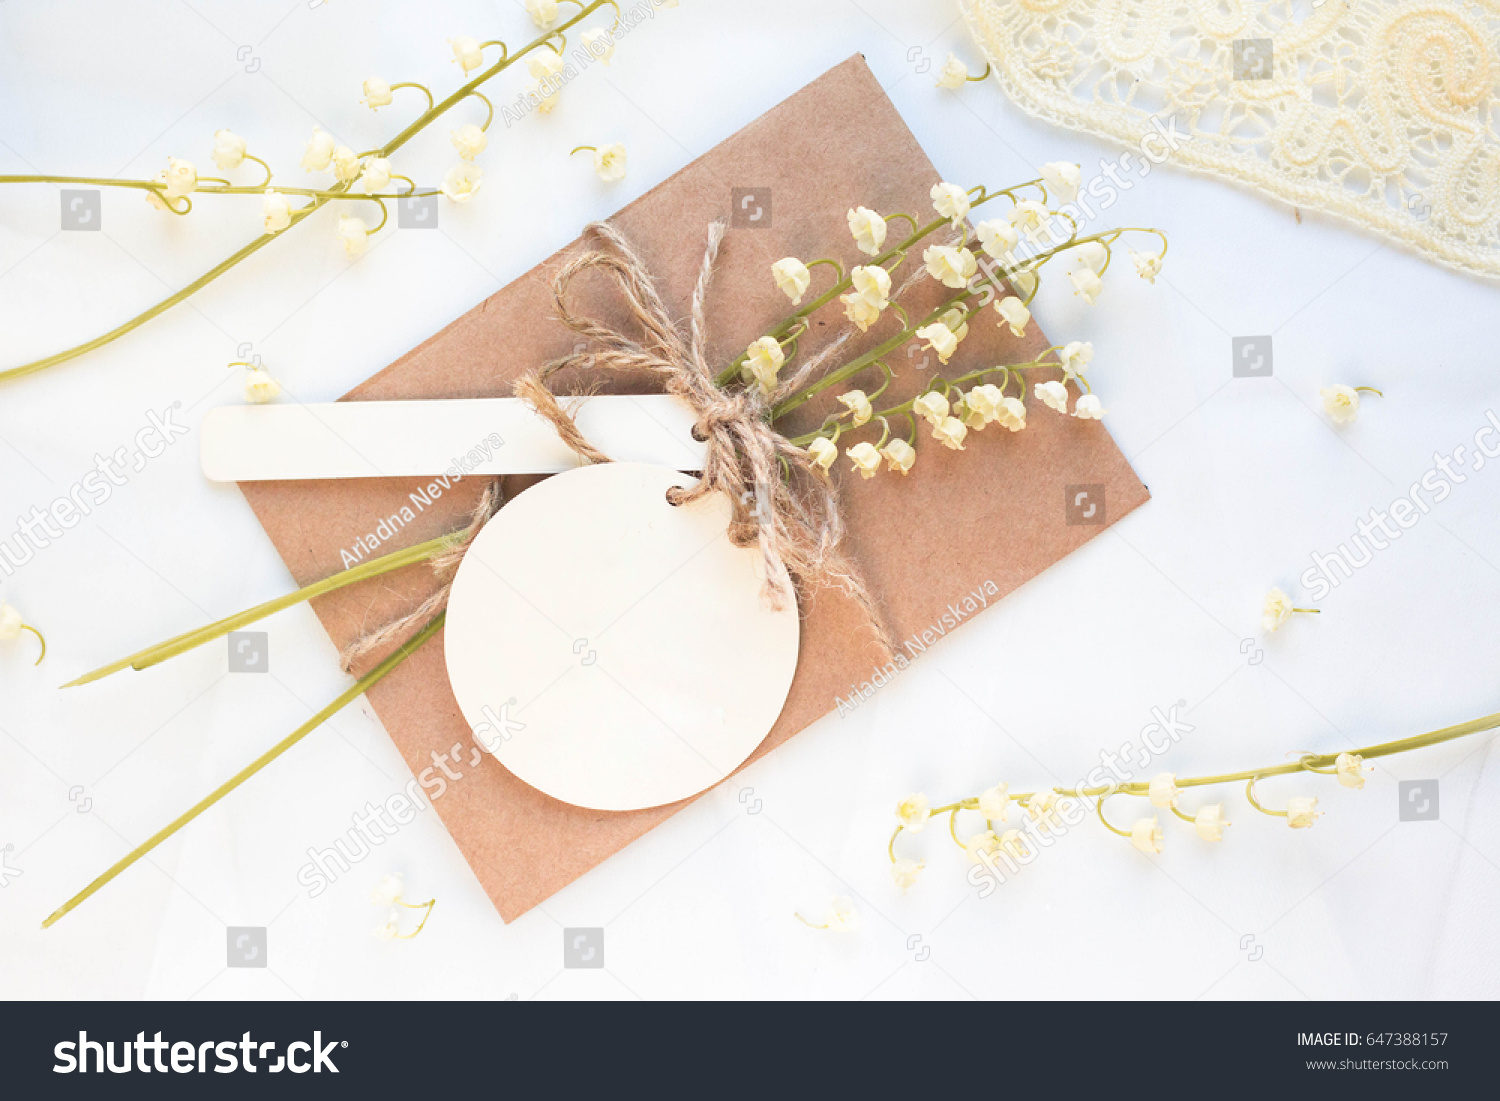 Mockup Postcard Lilies Valley On White Stock Photo 647388157 ...